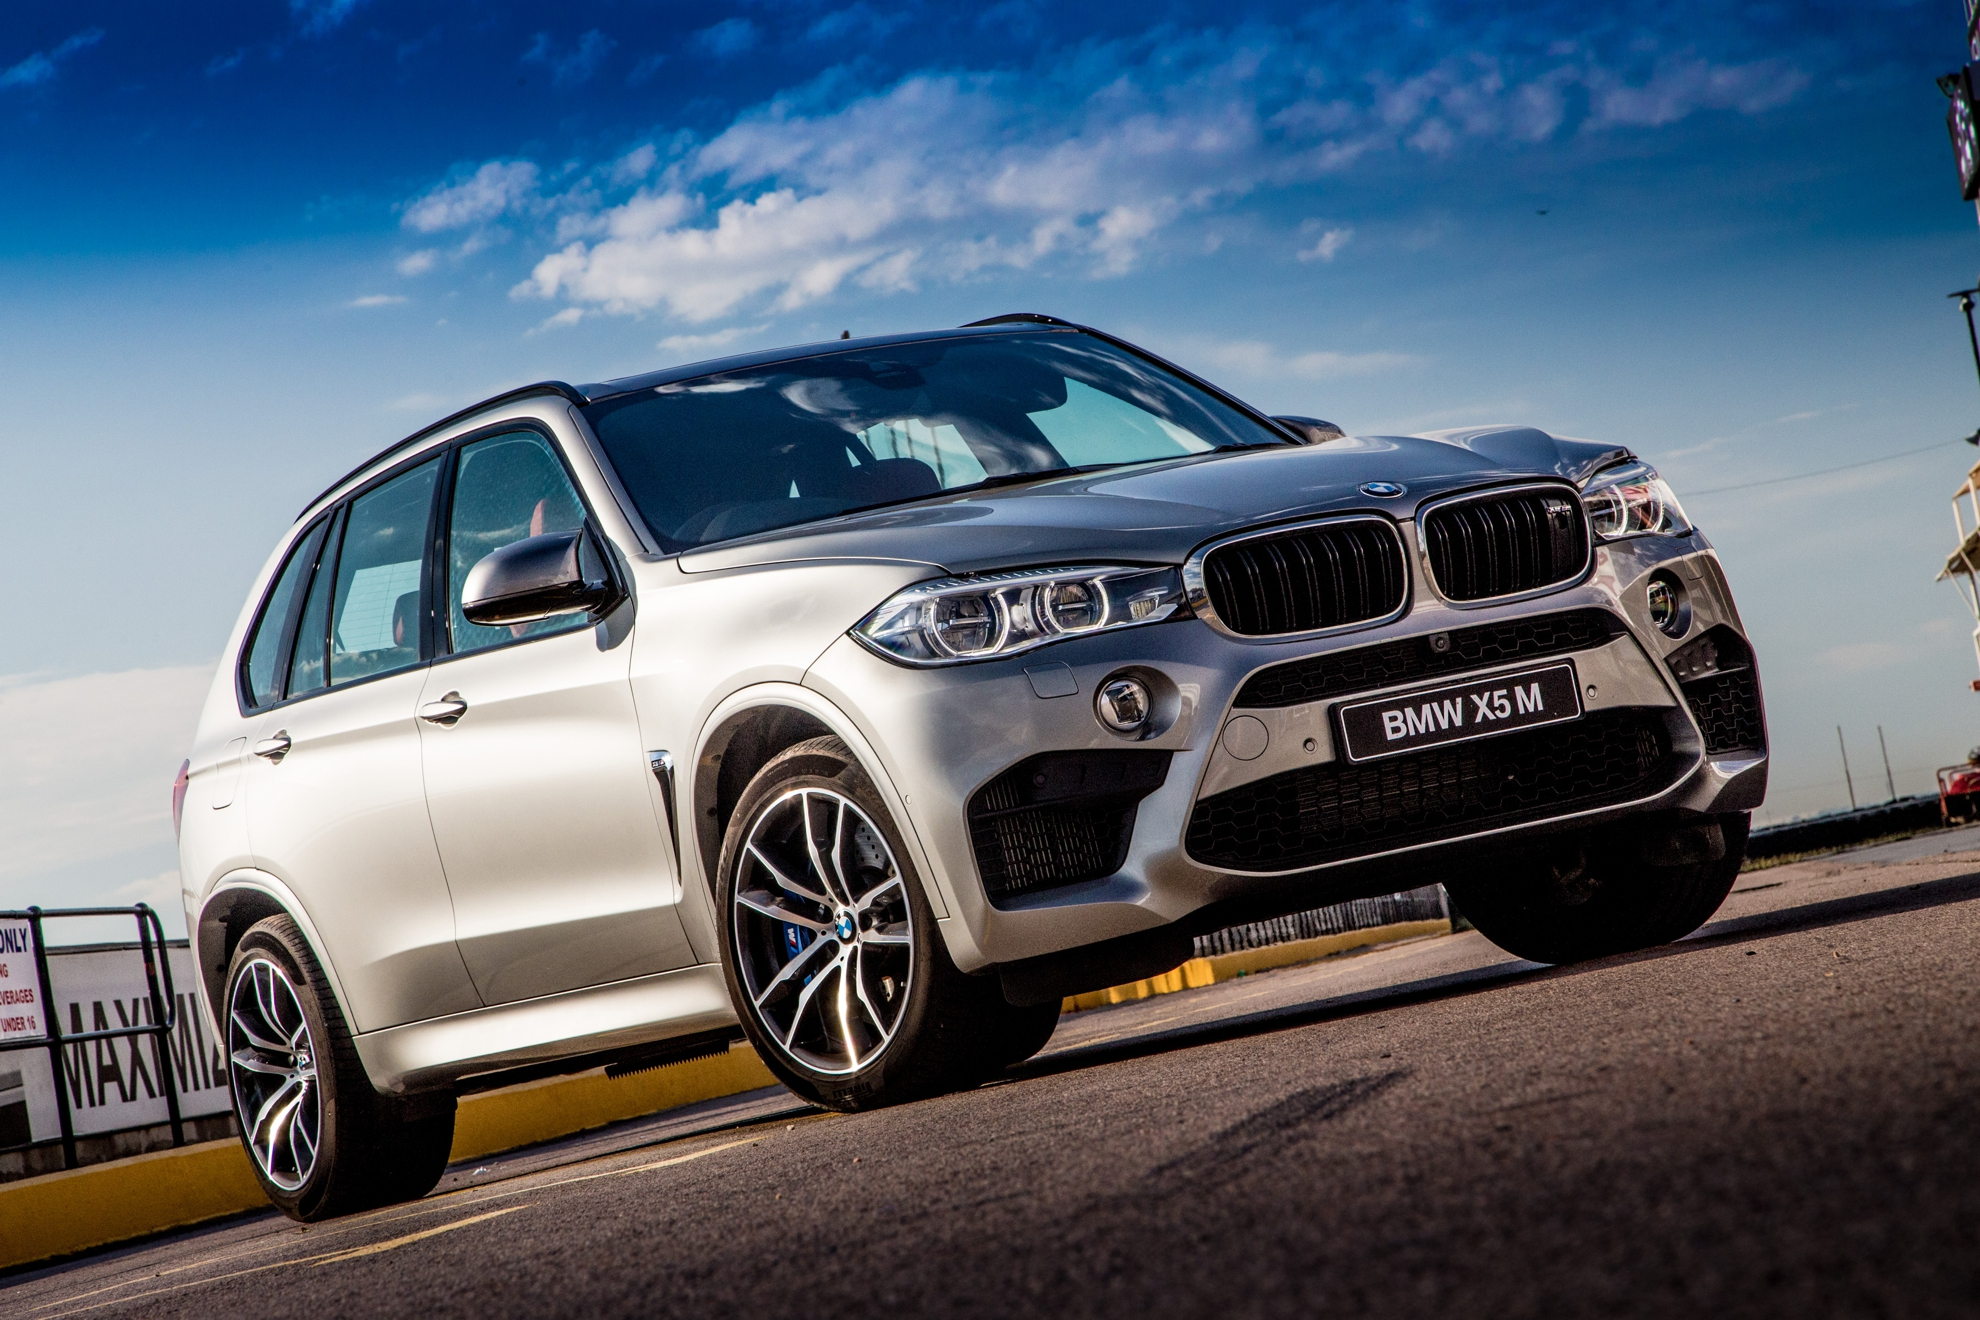 When The Previous Generation Of The Two Cars Arrived In 2009, It Was The  First Time The High Performance Character Distilled By BMW M GmbH Had Been  ...